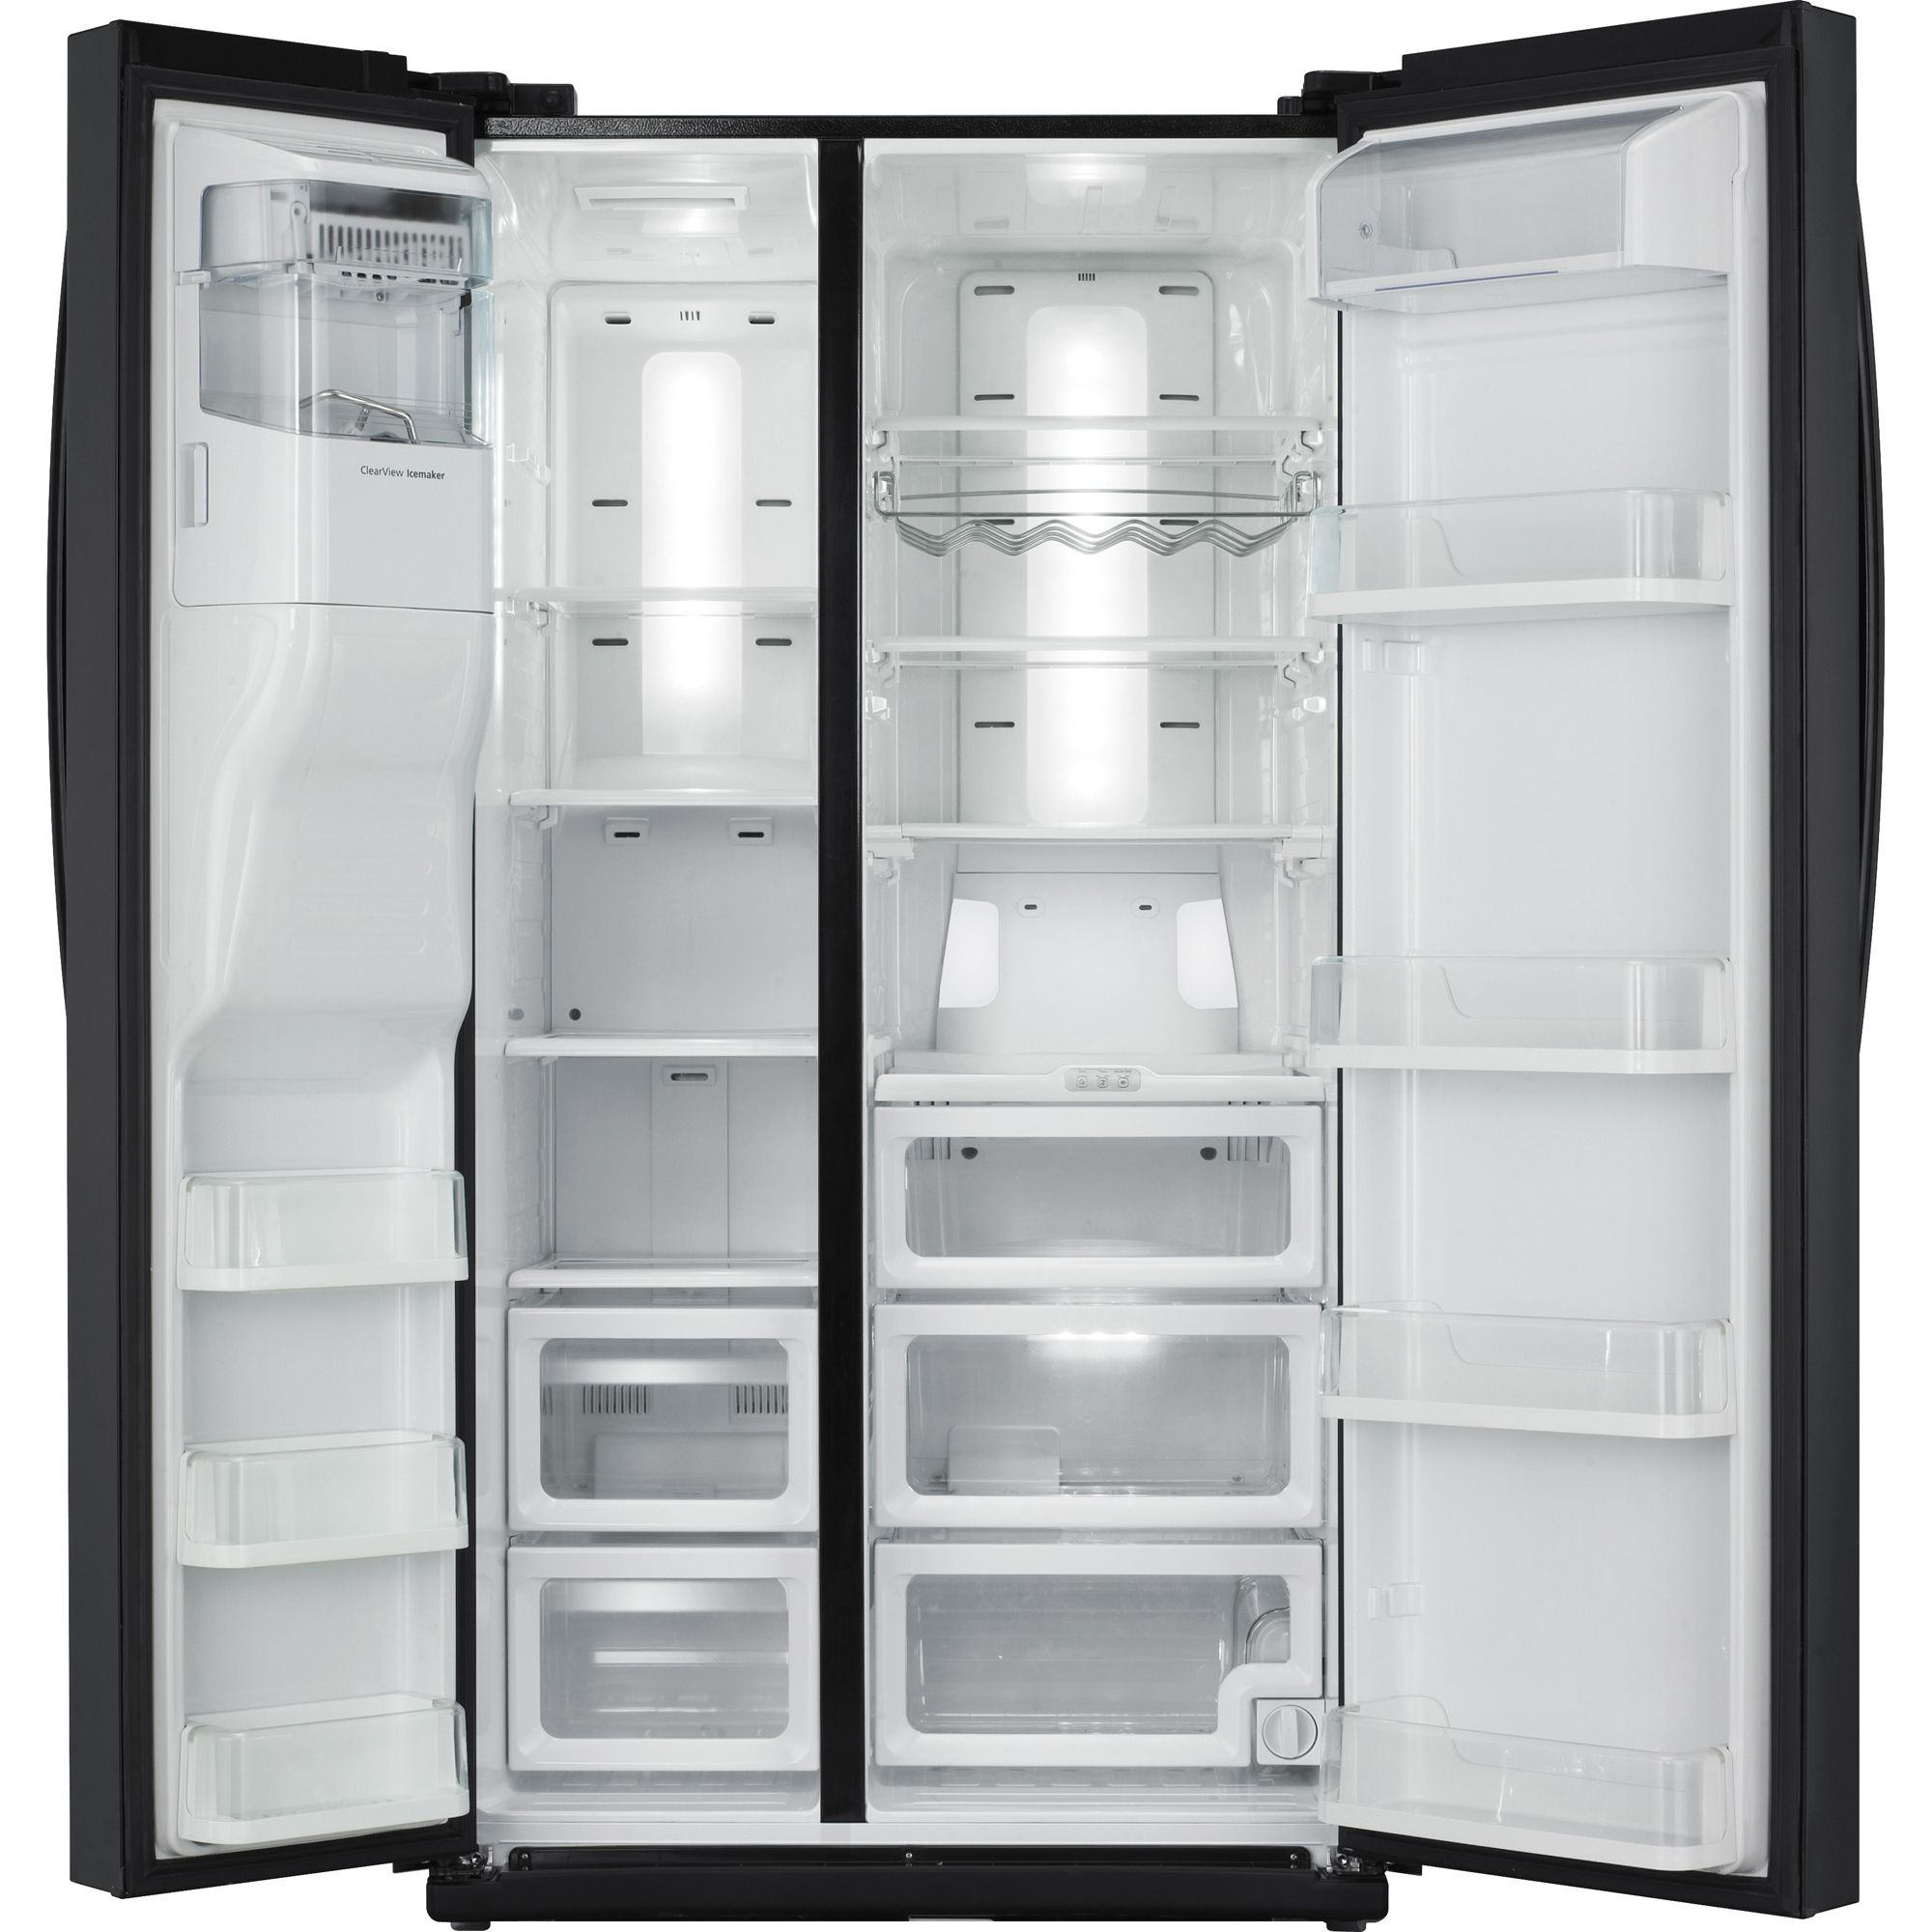 Samsung 25.5 cu. ft. Side-by-Side Refrigerator